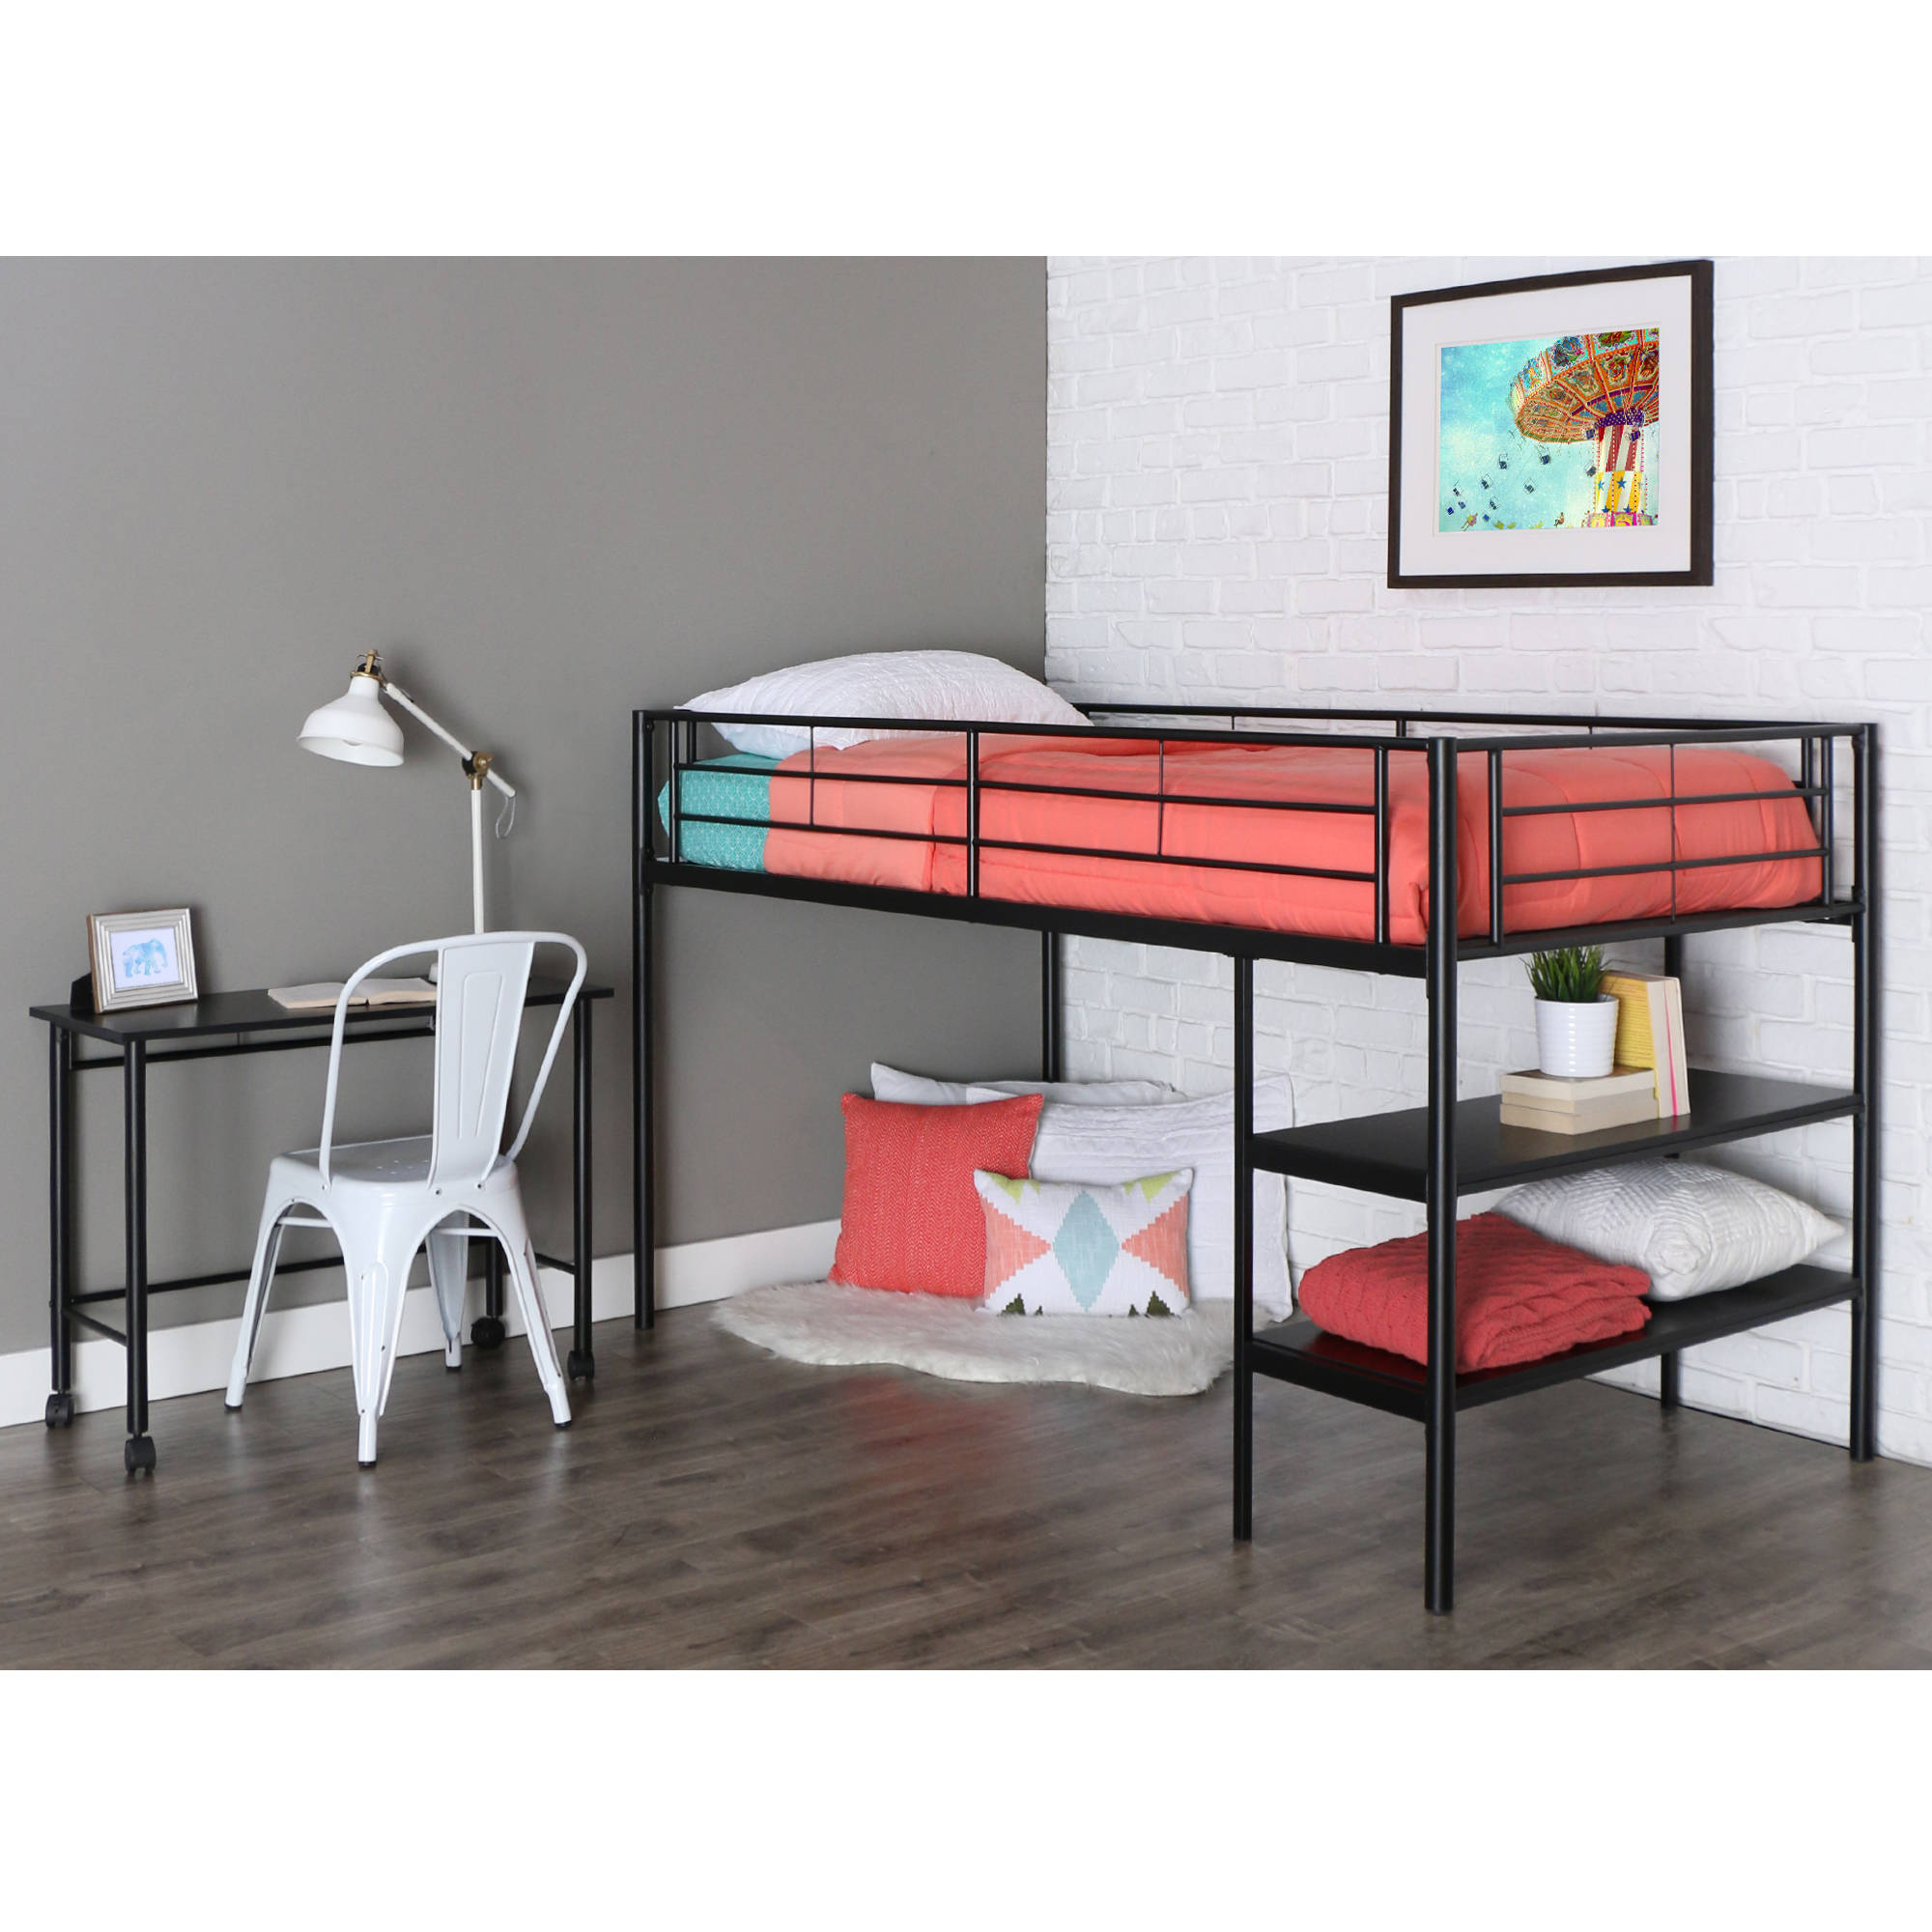 Walker Edison Twin Metal Loft Bed with Desk and Shelving, Multiple Colors